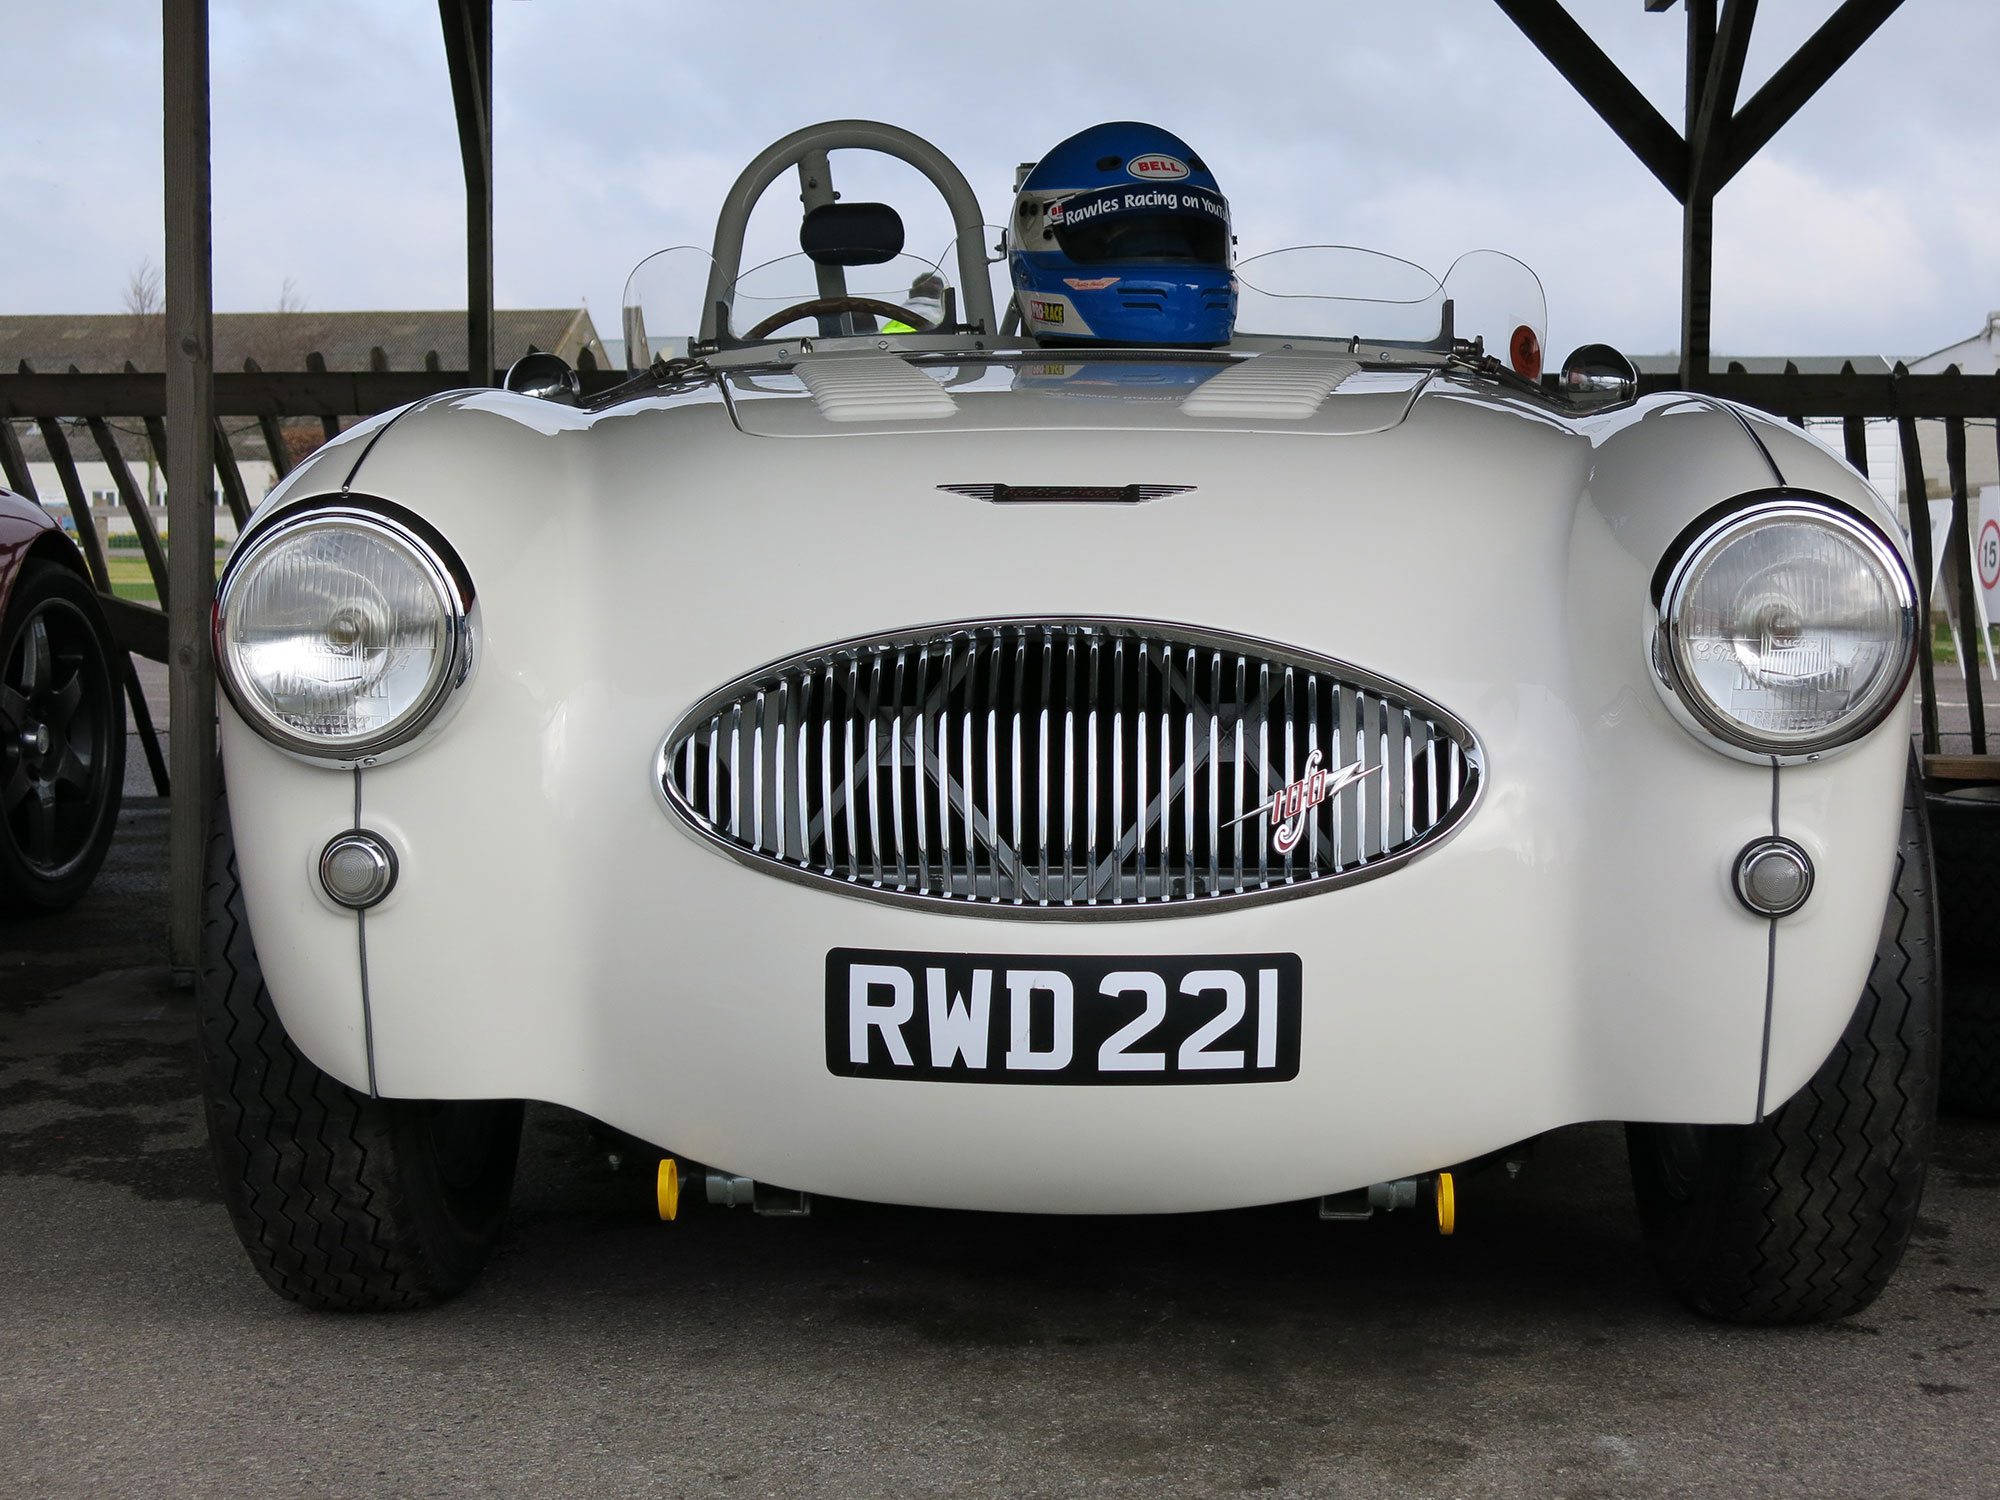 Goodwood Track day for the Austin Healey 100 S remanufactured to factory spec by Bill Rawles Classic Cars